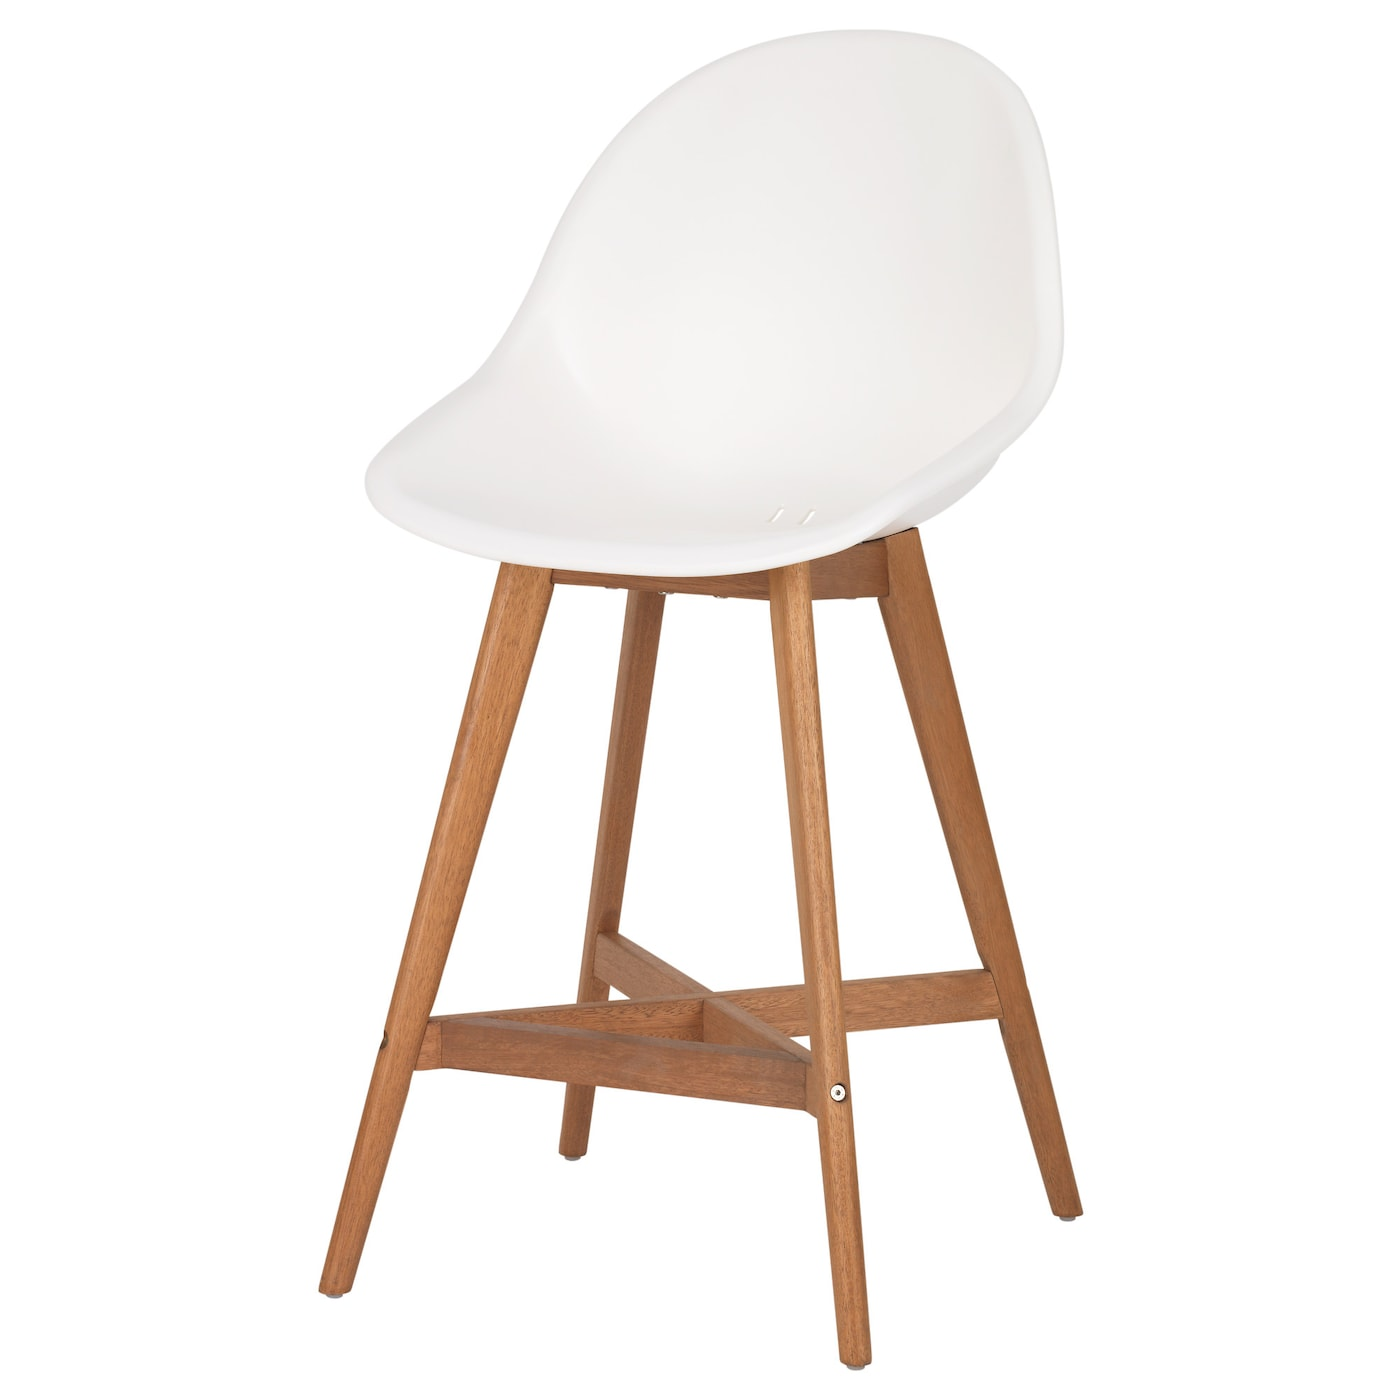 Fanbyn bar stool with backrest white 64 cm ikea for Barhocker 90 ikea